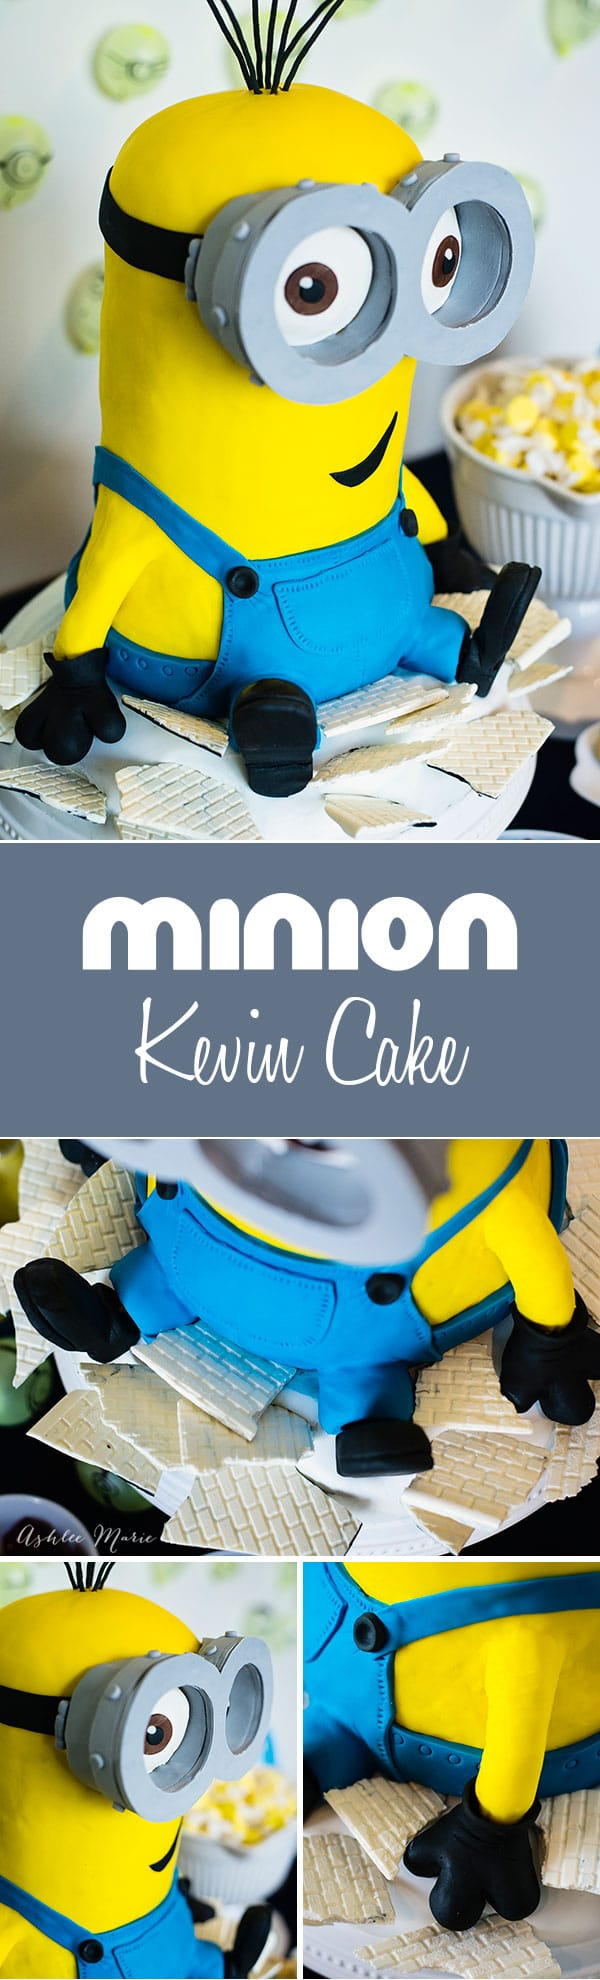 a video tutorial on making this minions cake - Giant Kevin sitting in the rubble of Scarlet Overkill's castle